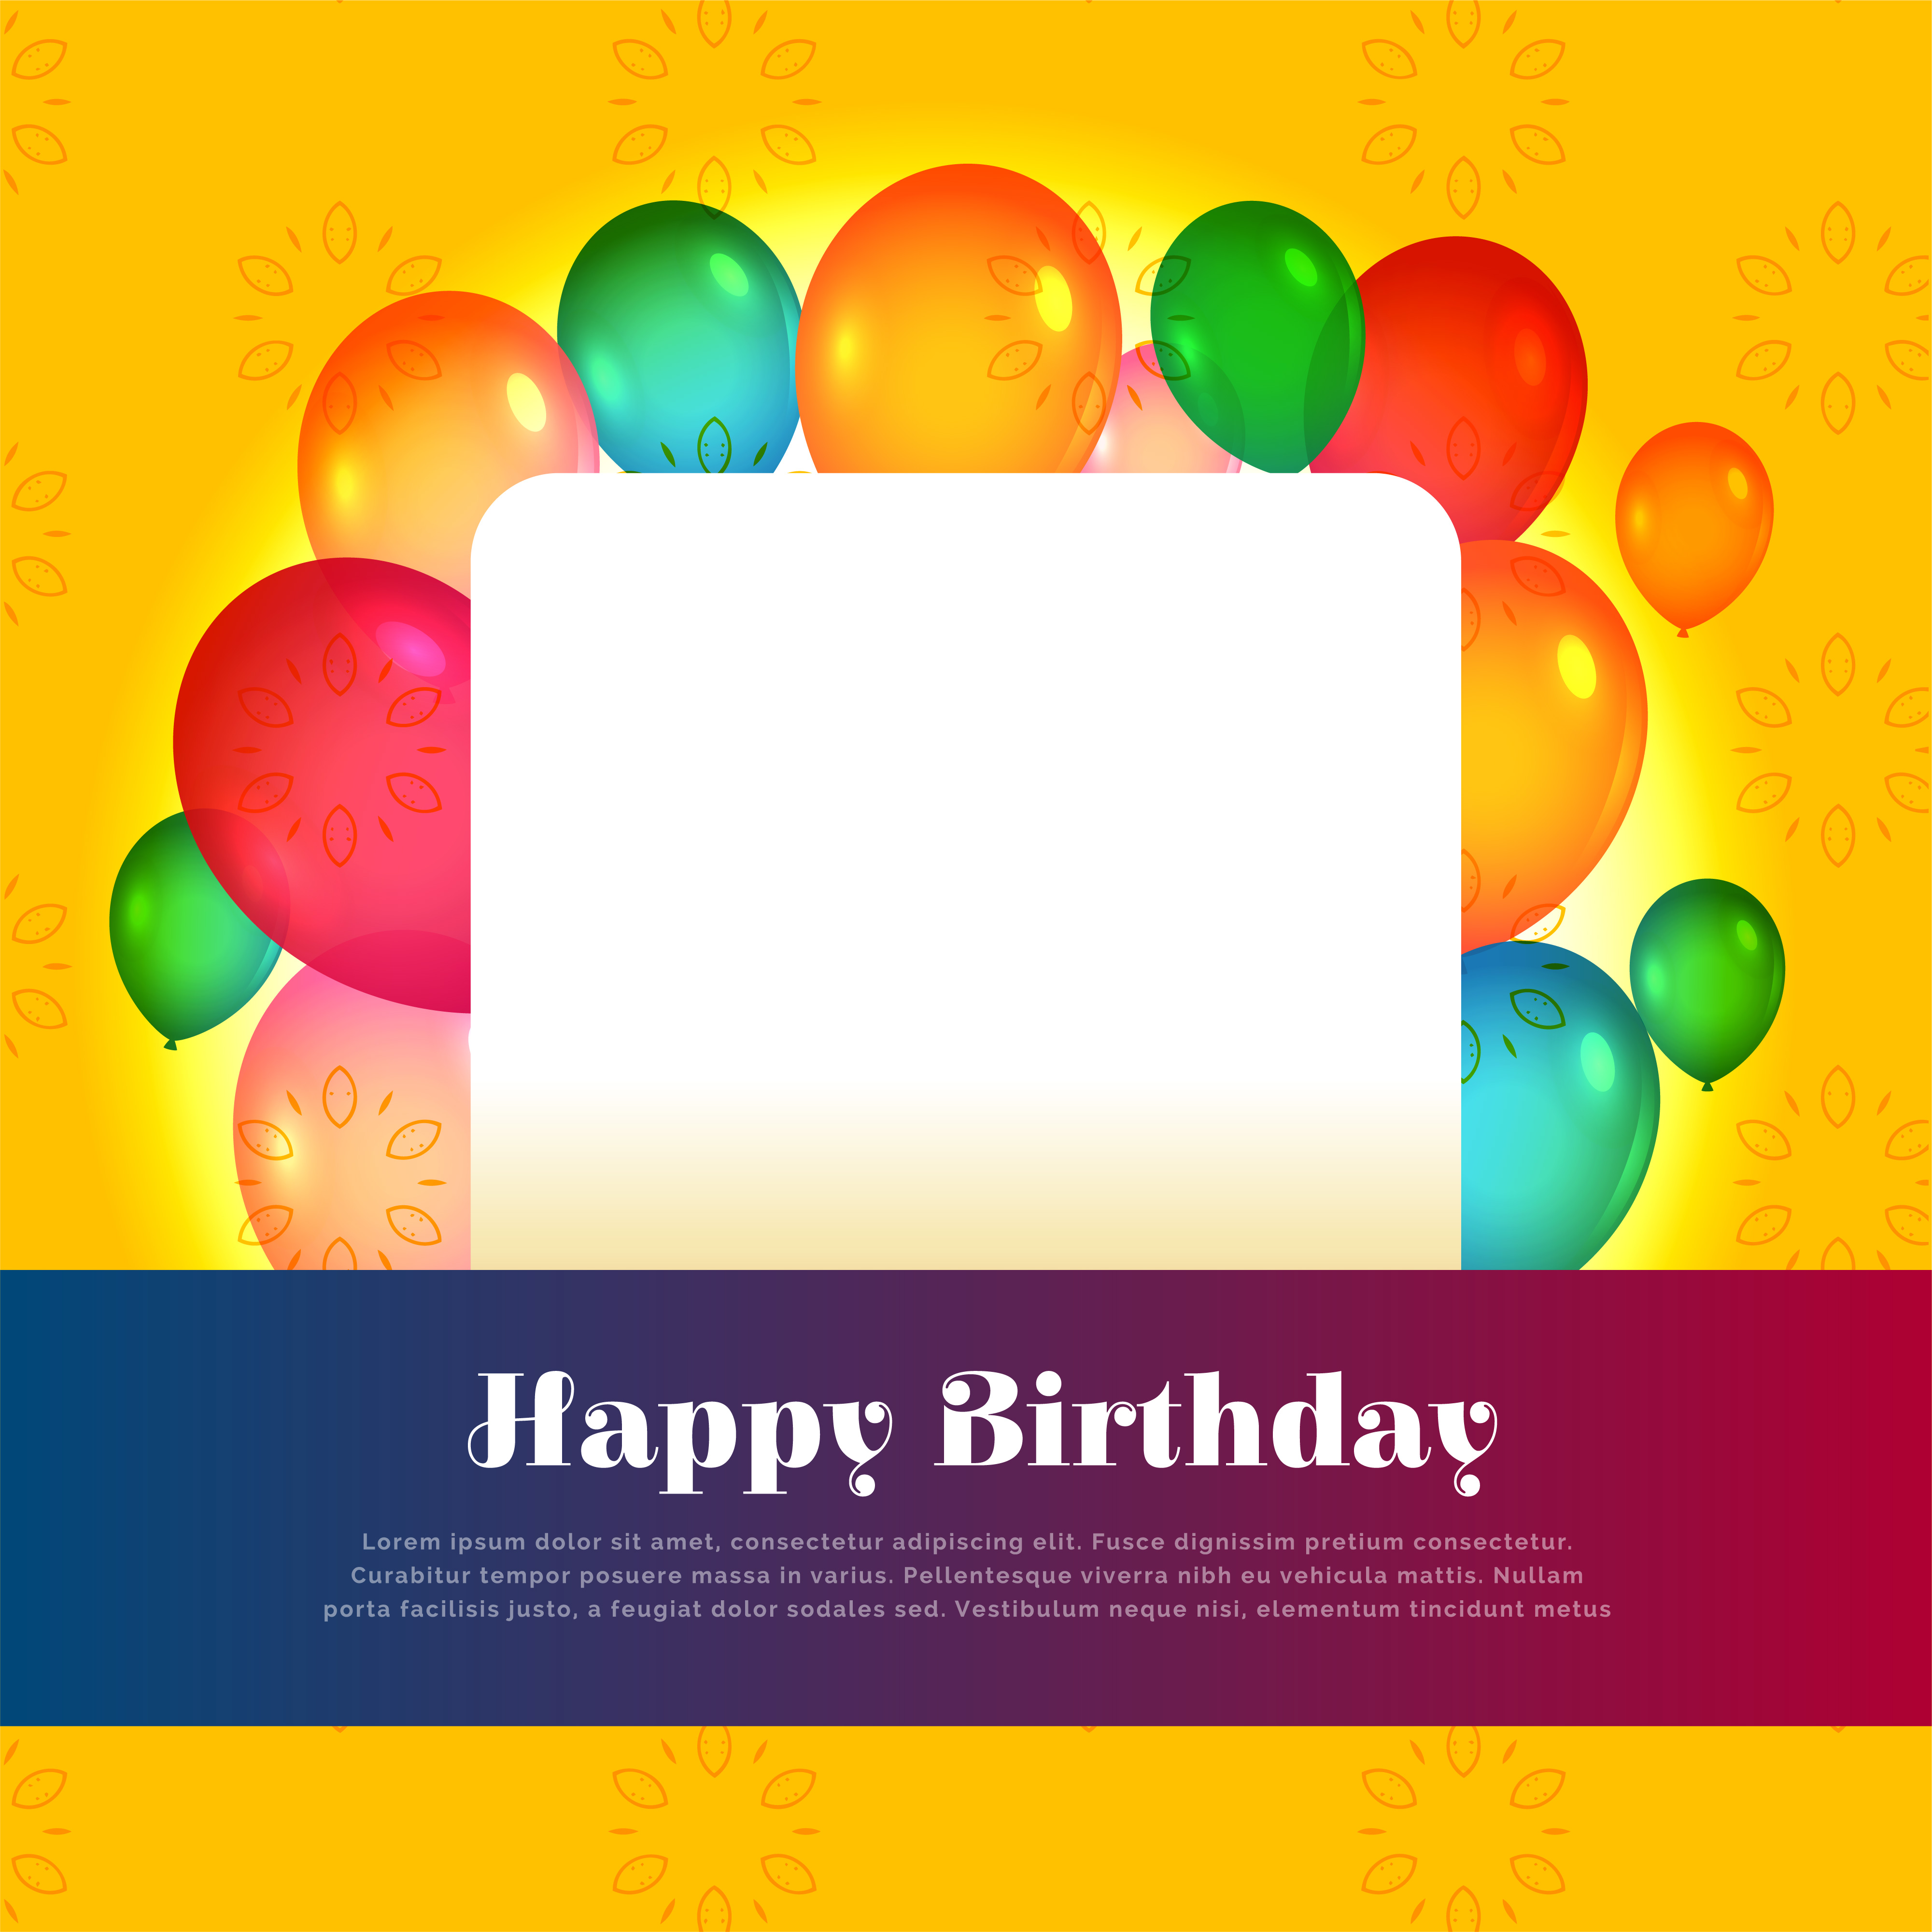 happy birthday card design with text space  download free